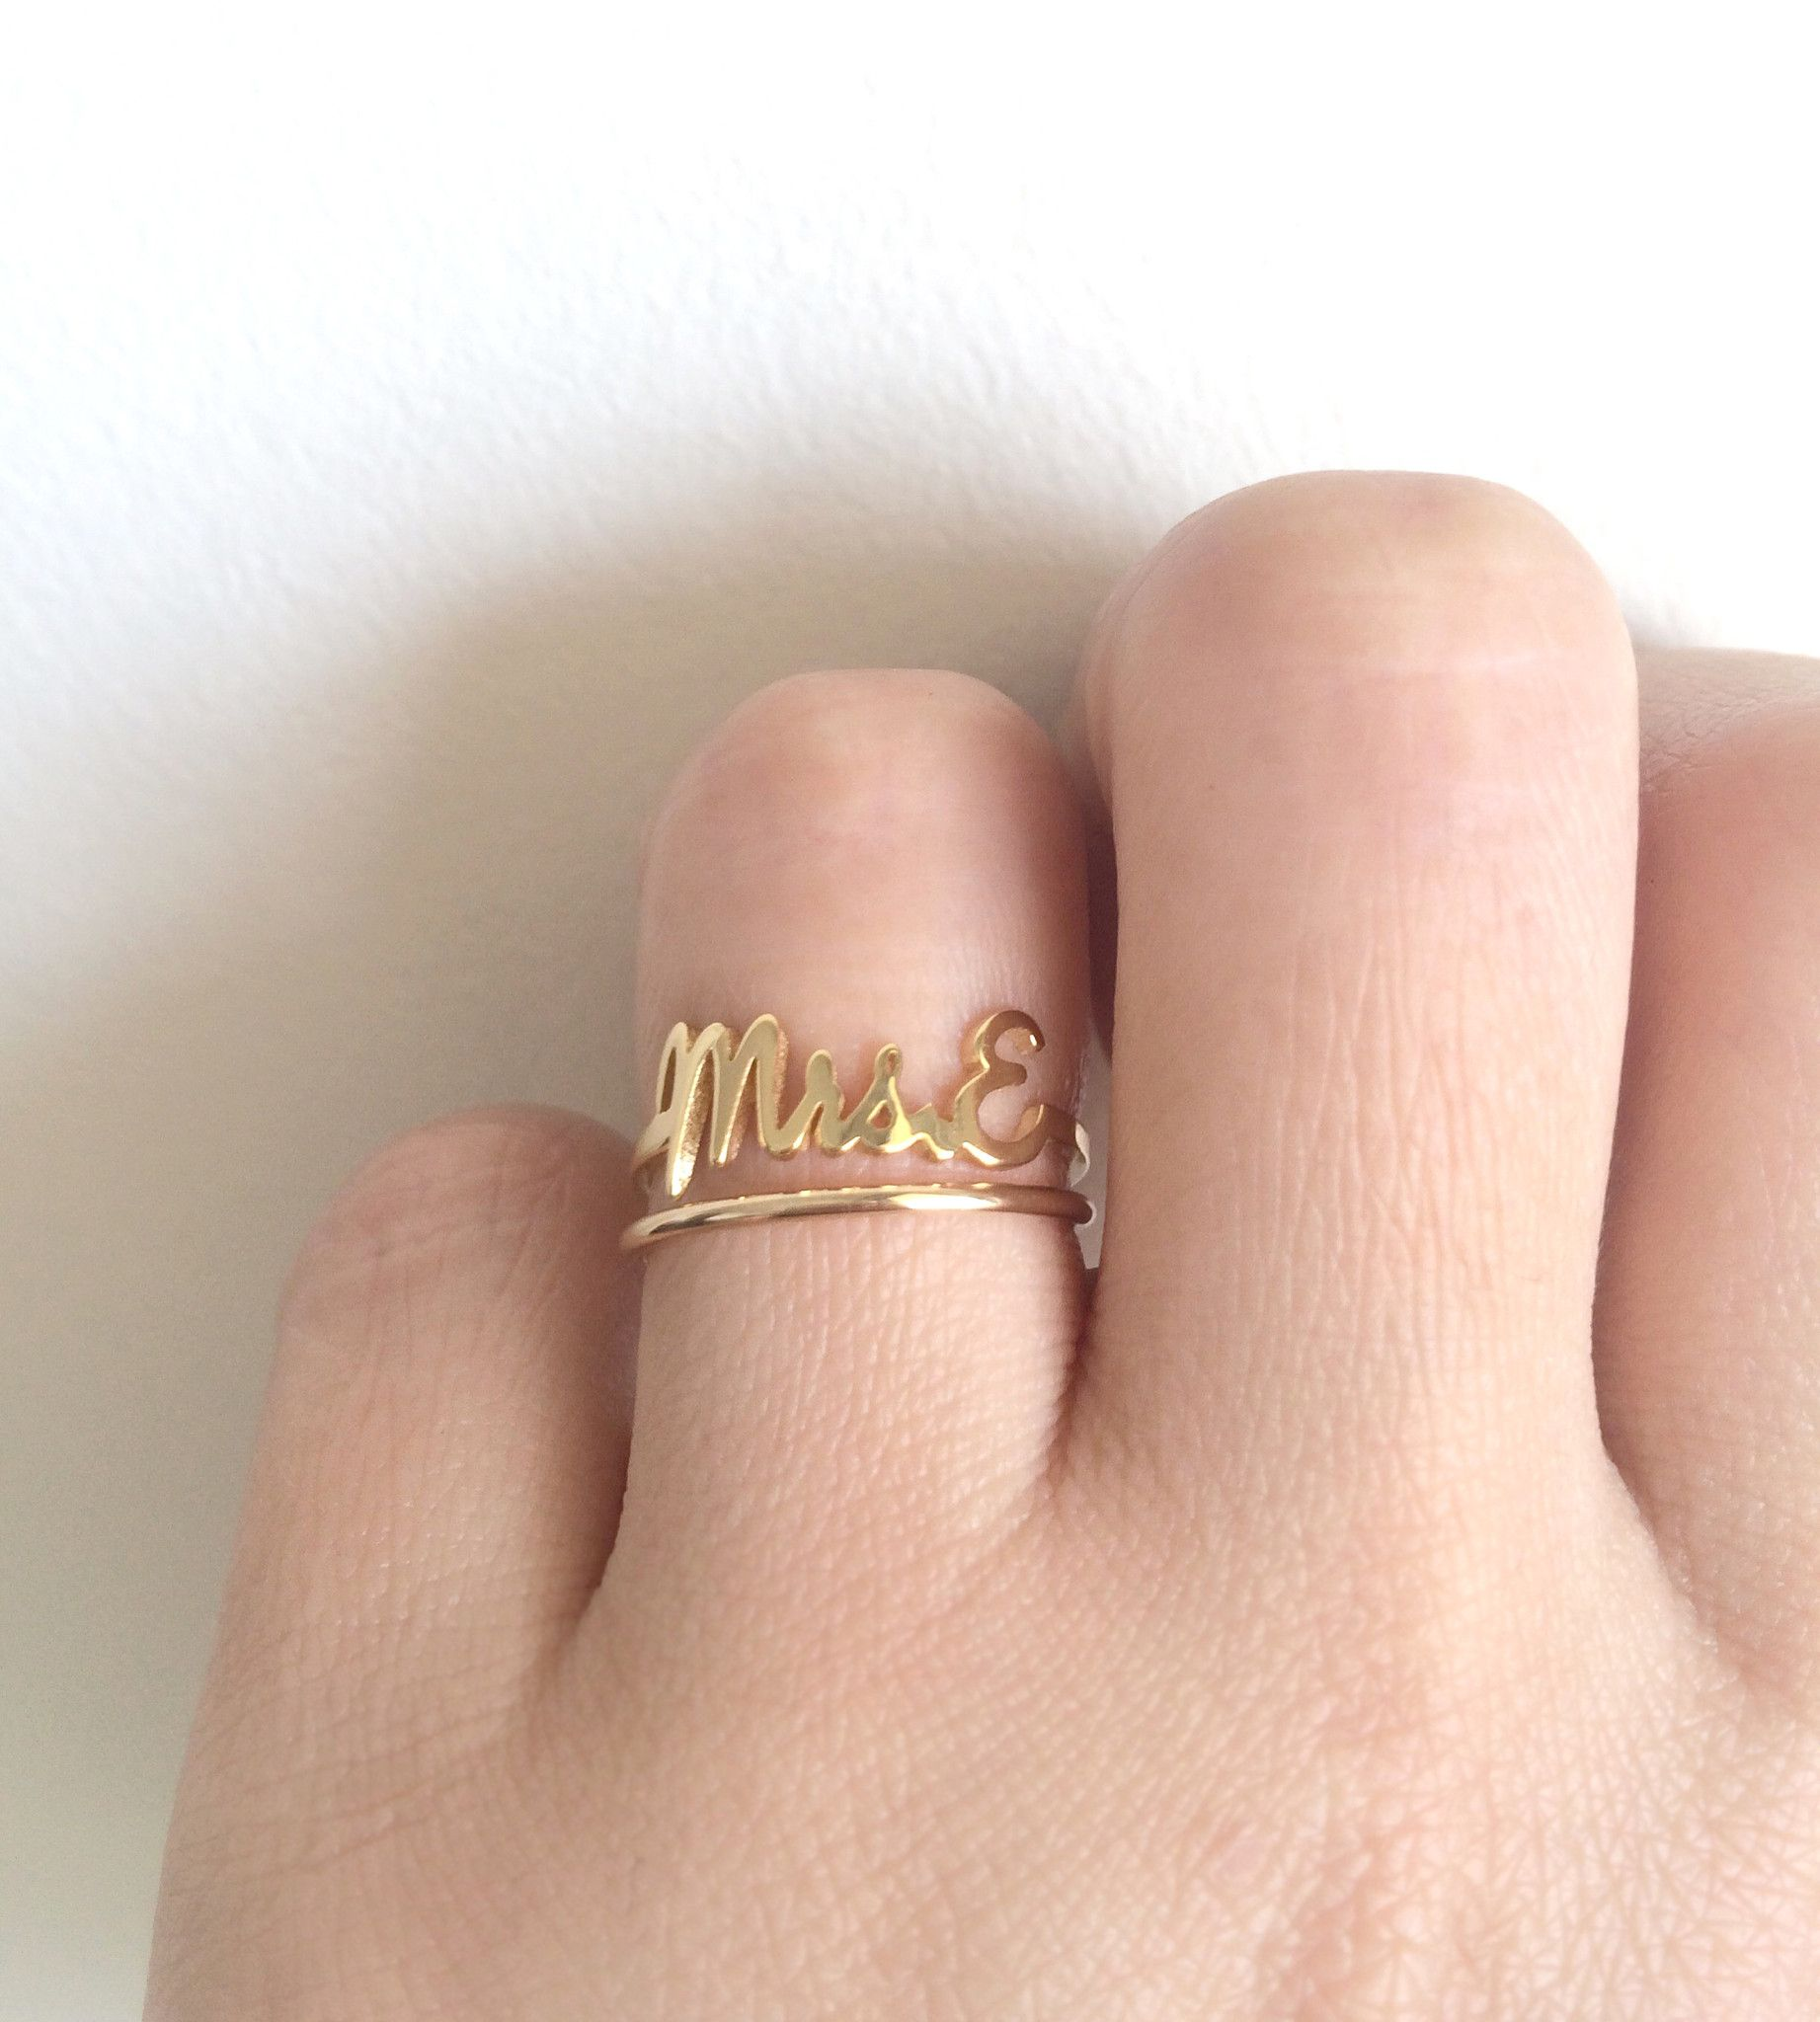 can available pin finger solid in gold mod initial ring the e yellow mrs with initials this of and rings choice engagement or your white be customized rose